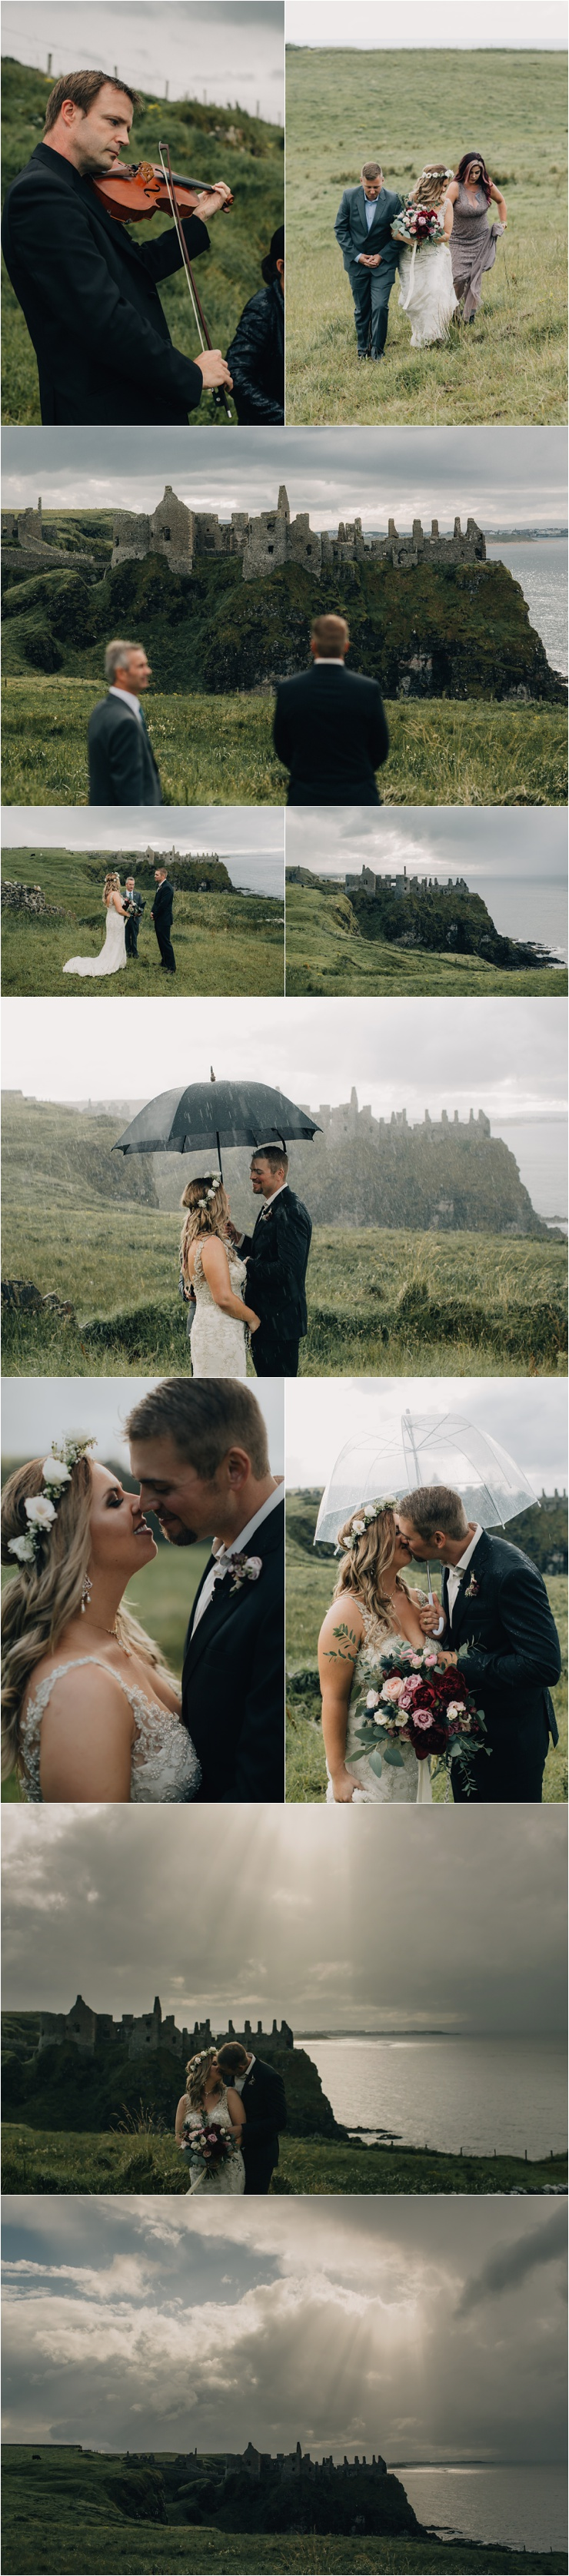 An elopement at Dunluce Castle in the rain by Paula O'Hara